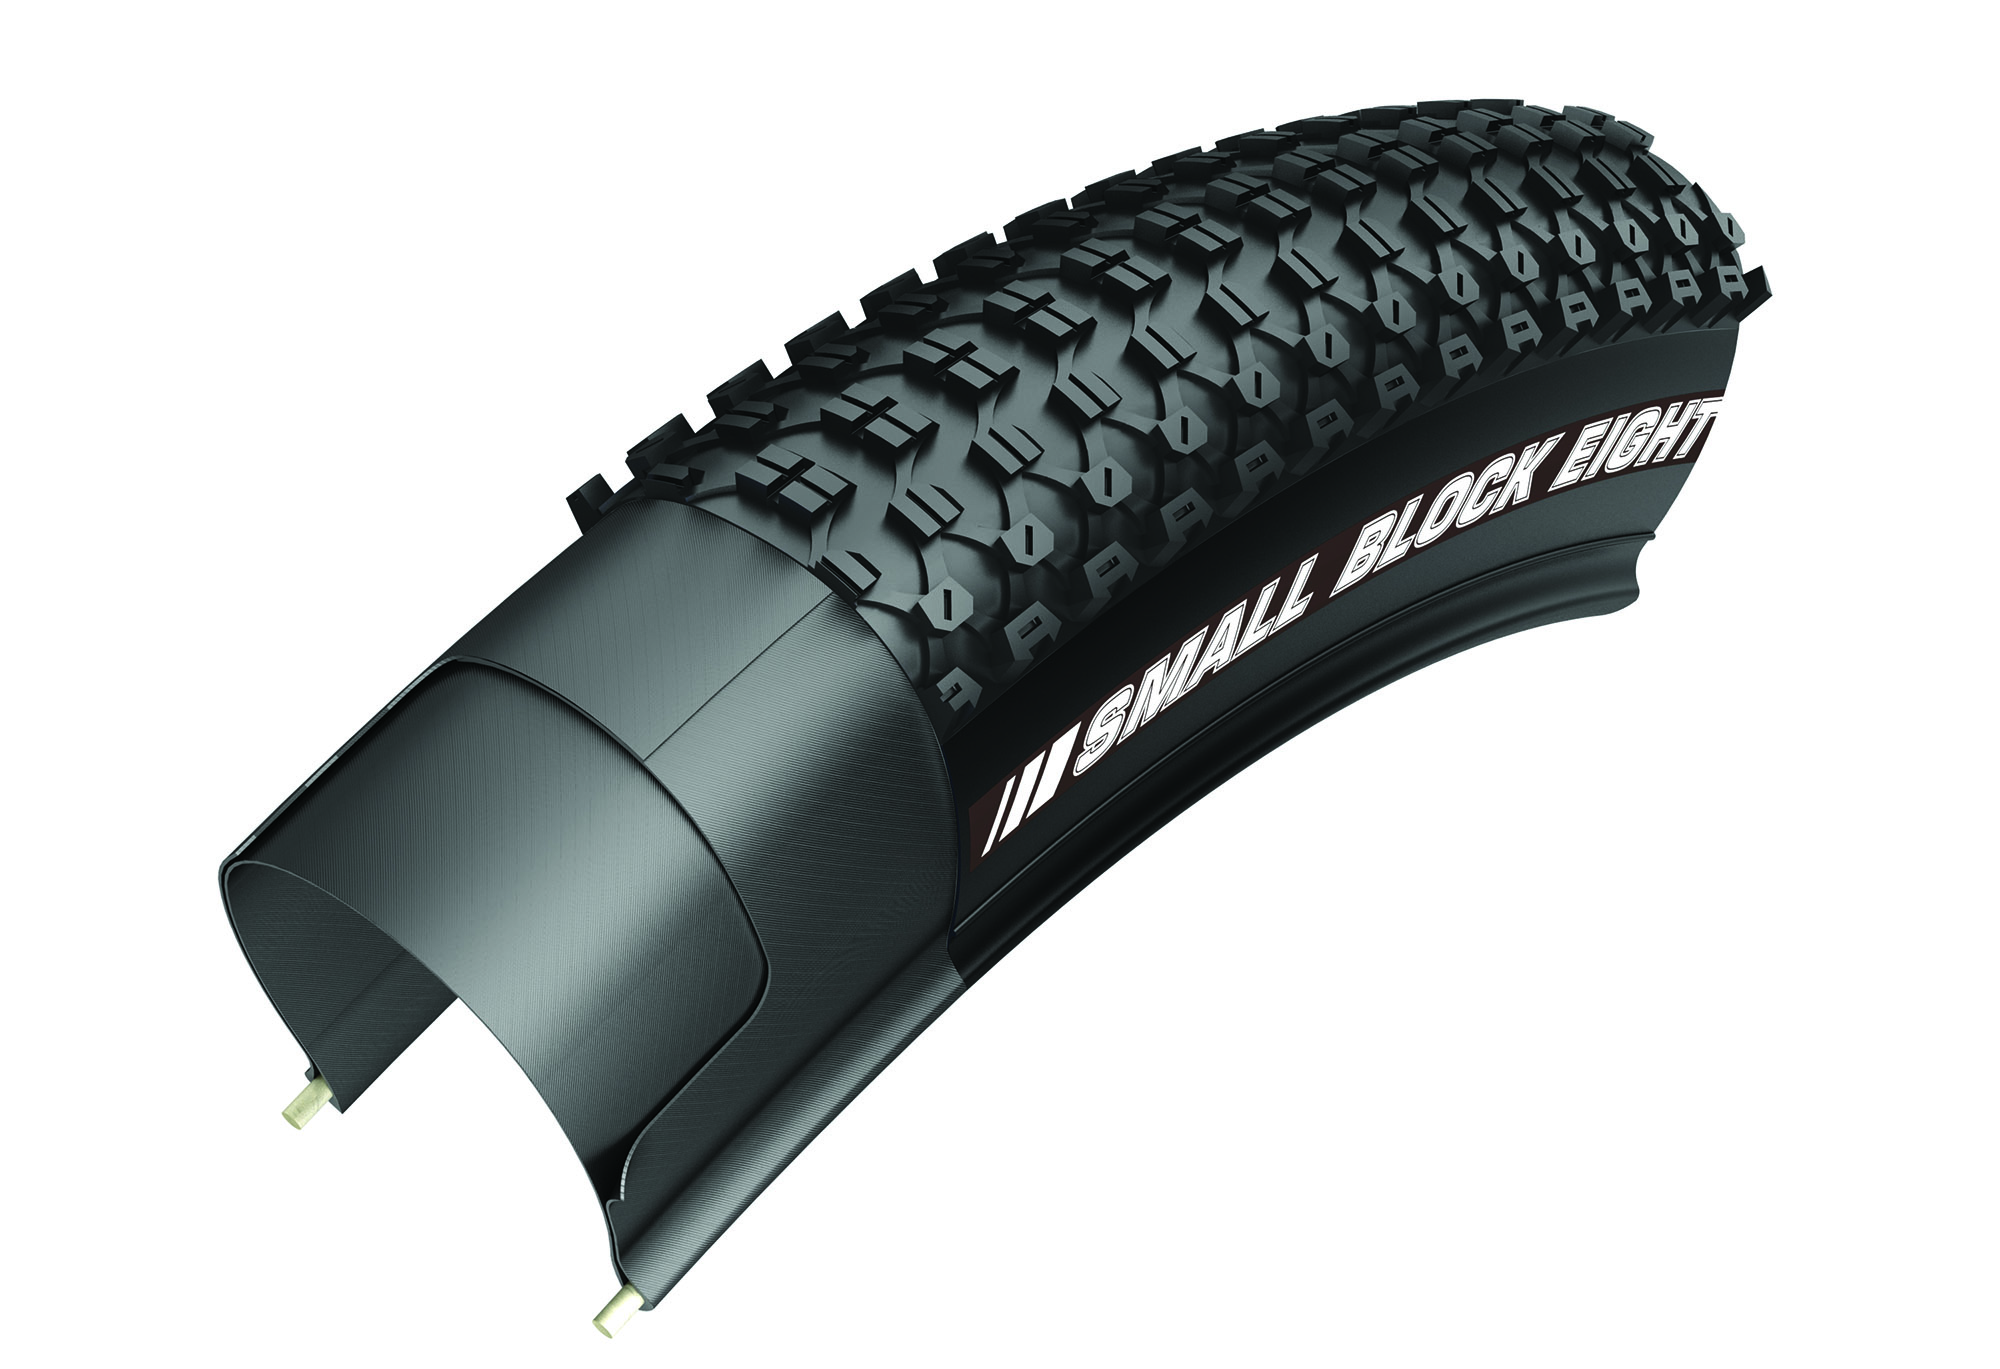 New Kenda 20x1.75 Rim Strips Bundle of 25